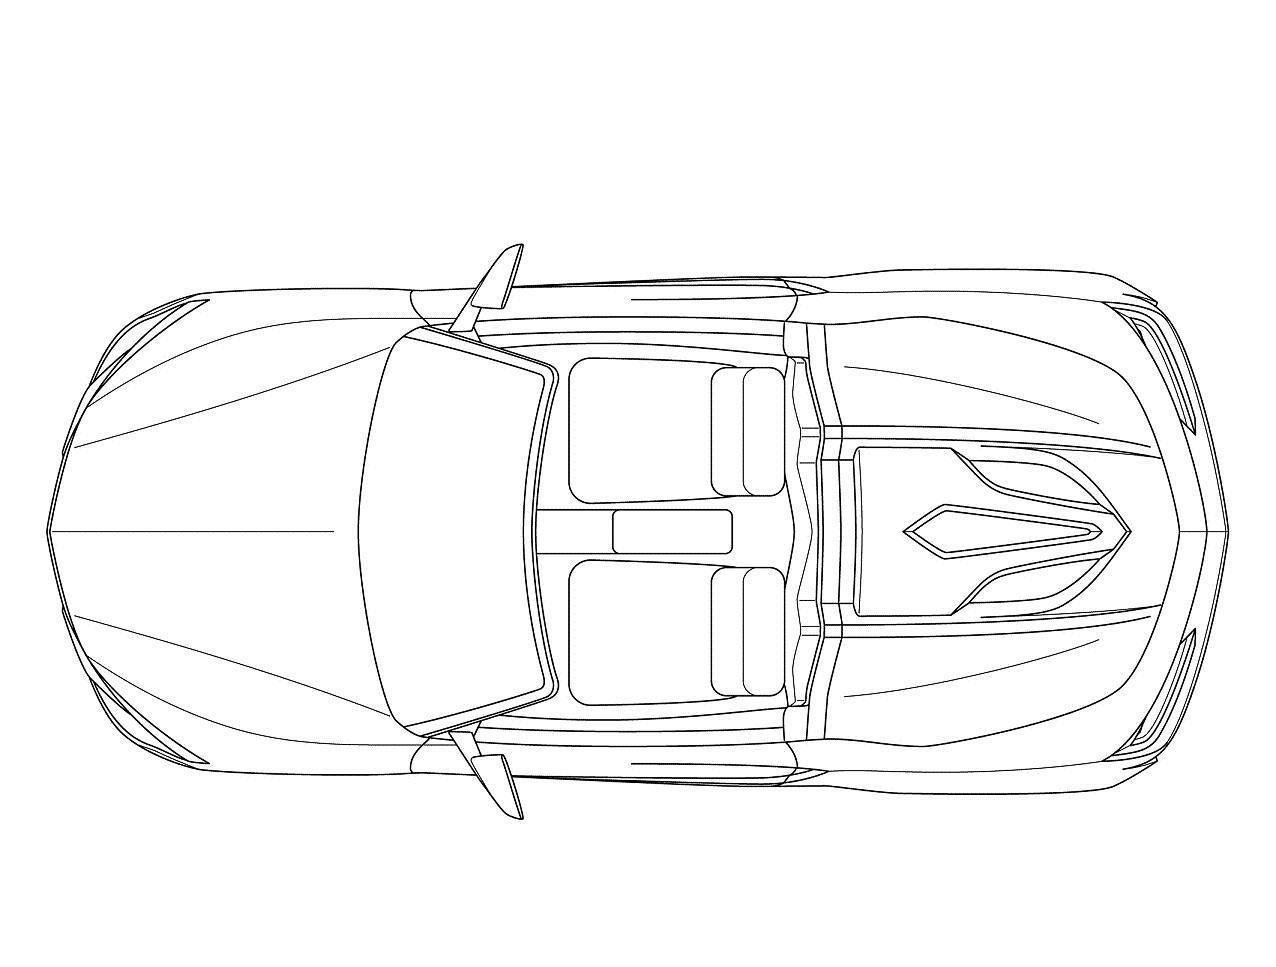 Top View Of Car Drawing